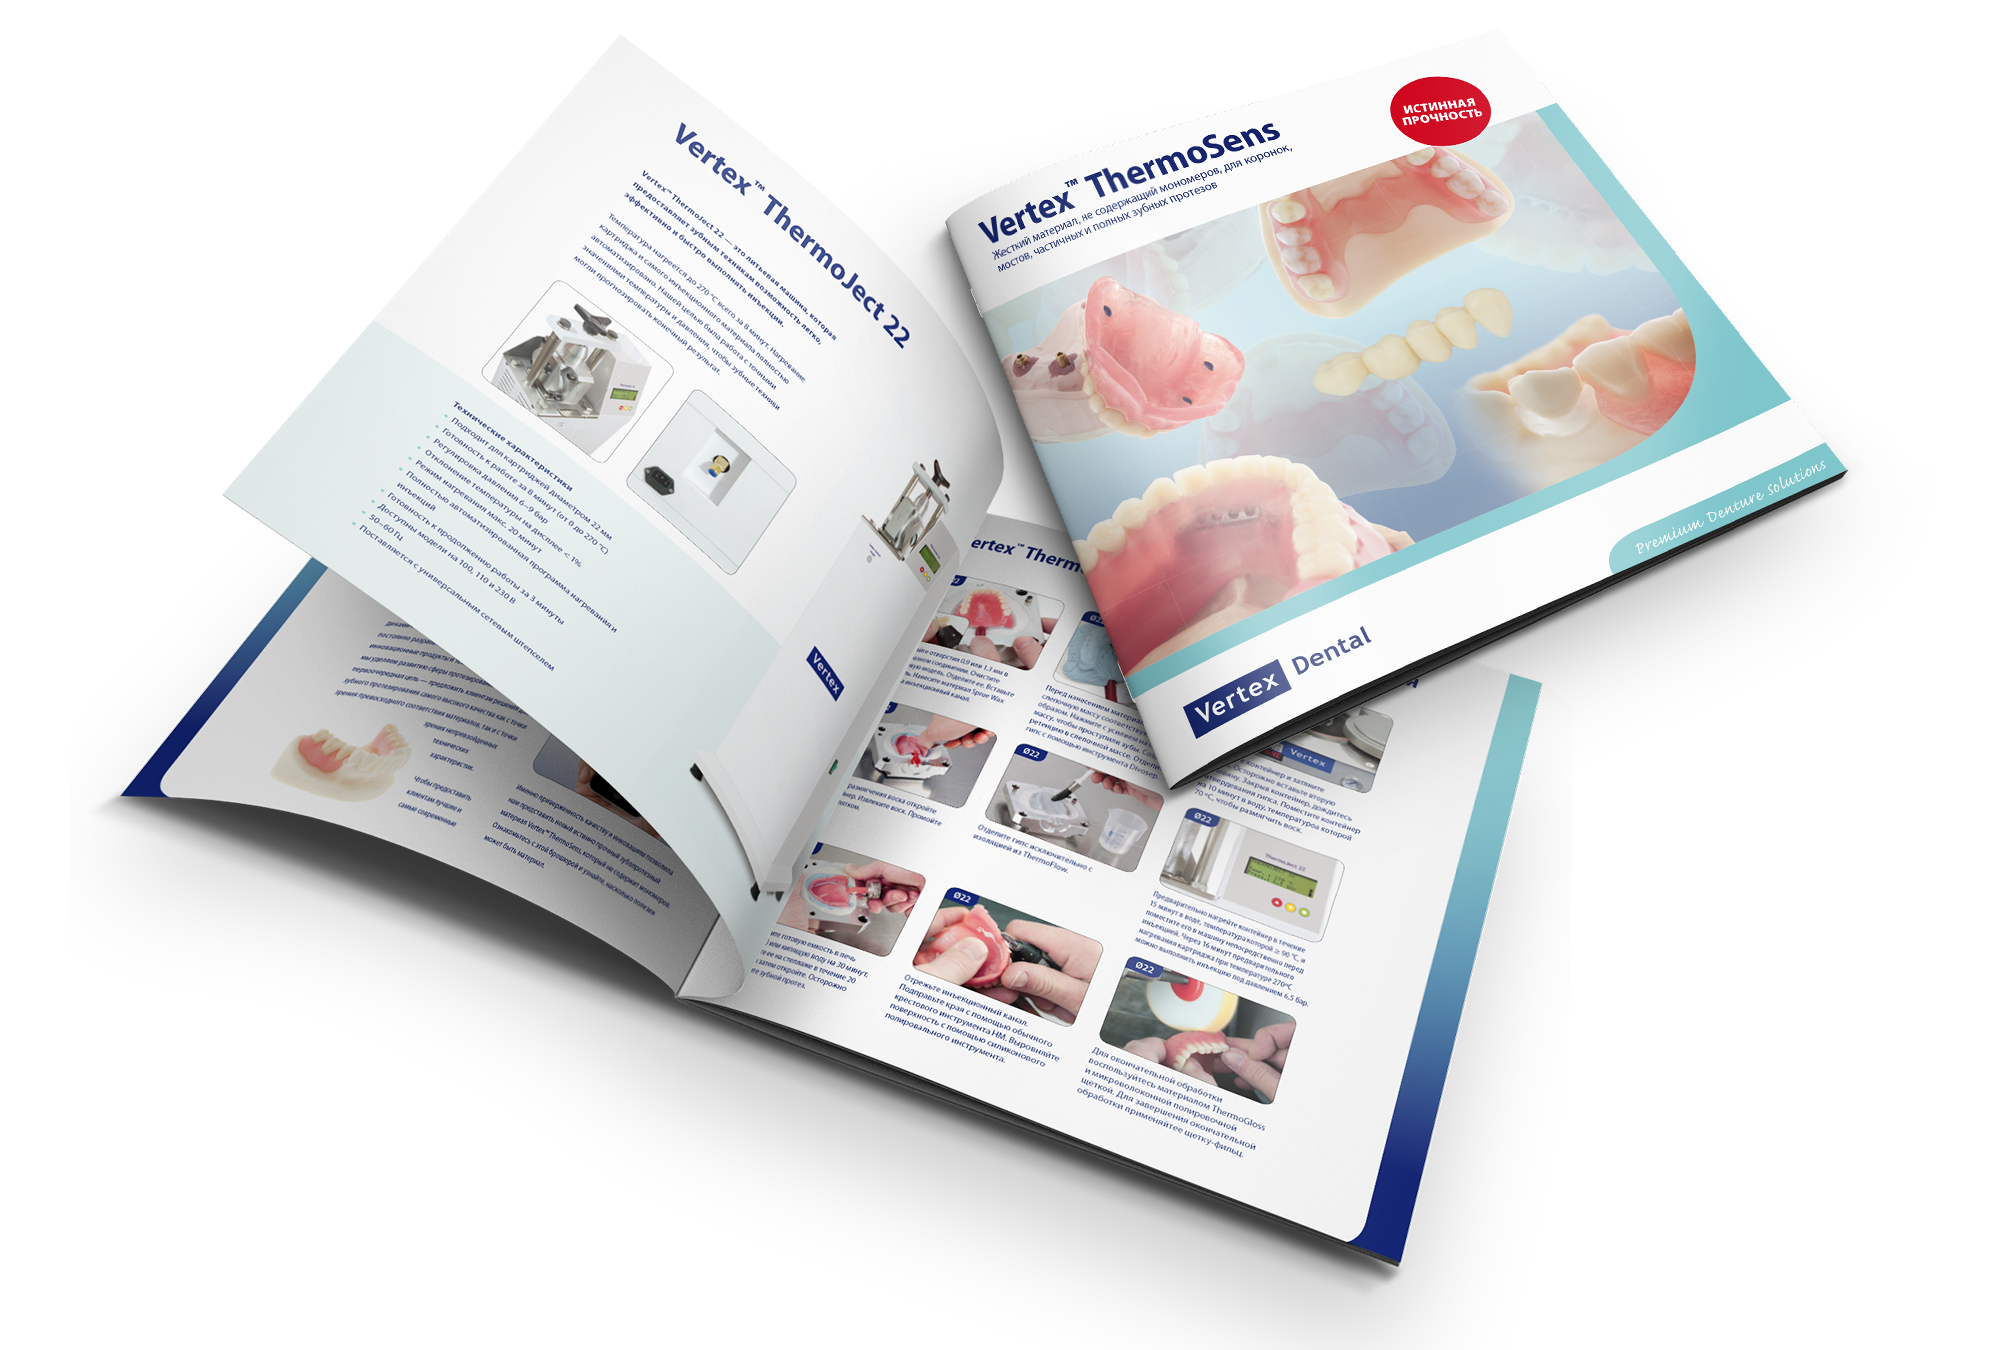 Vertex Dental thermosens brochure